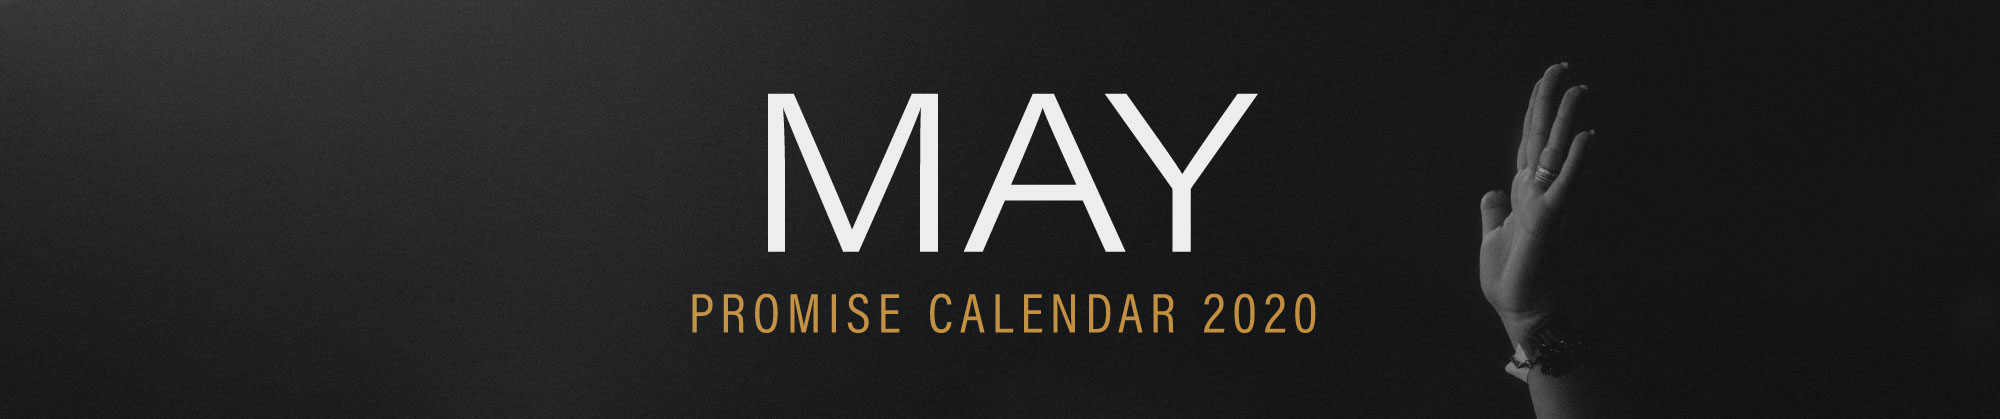 May 2020 Promise Calendar